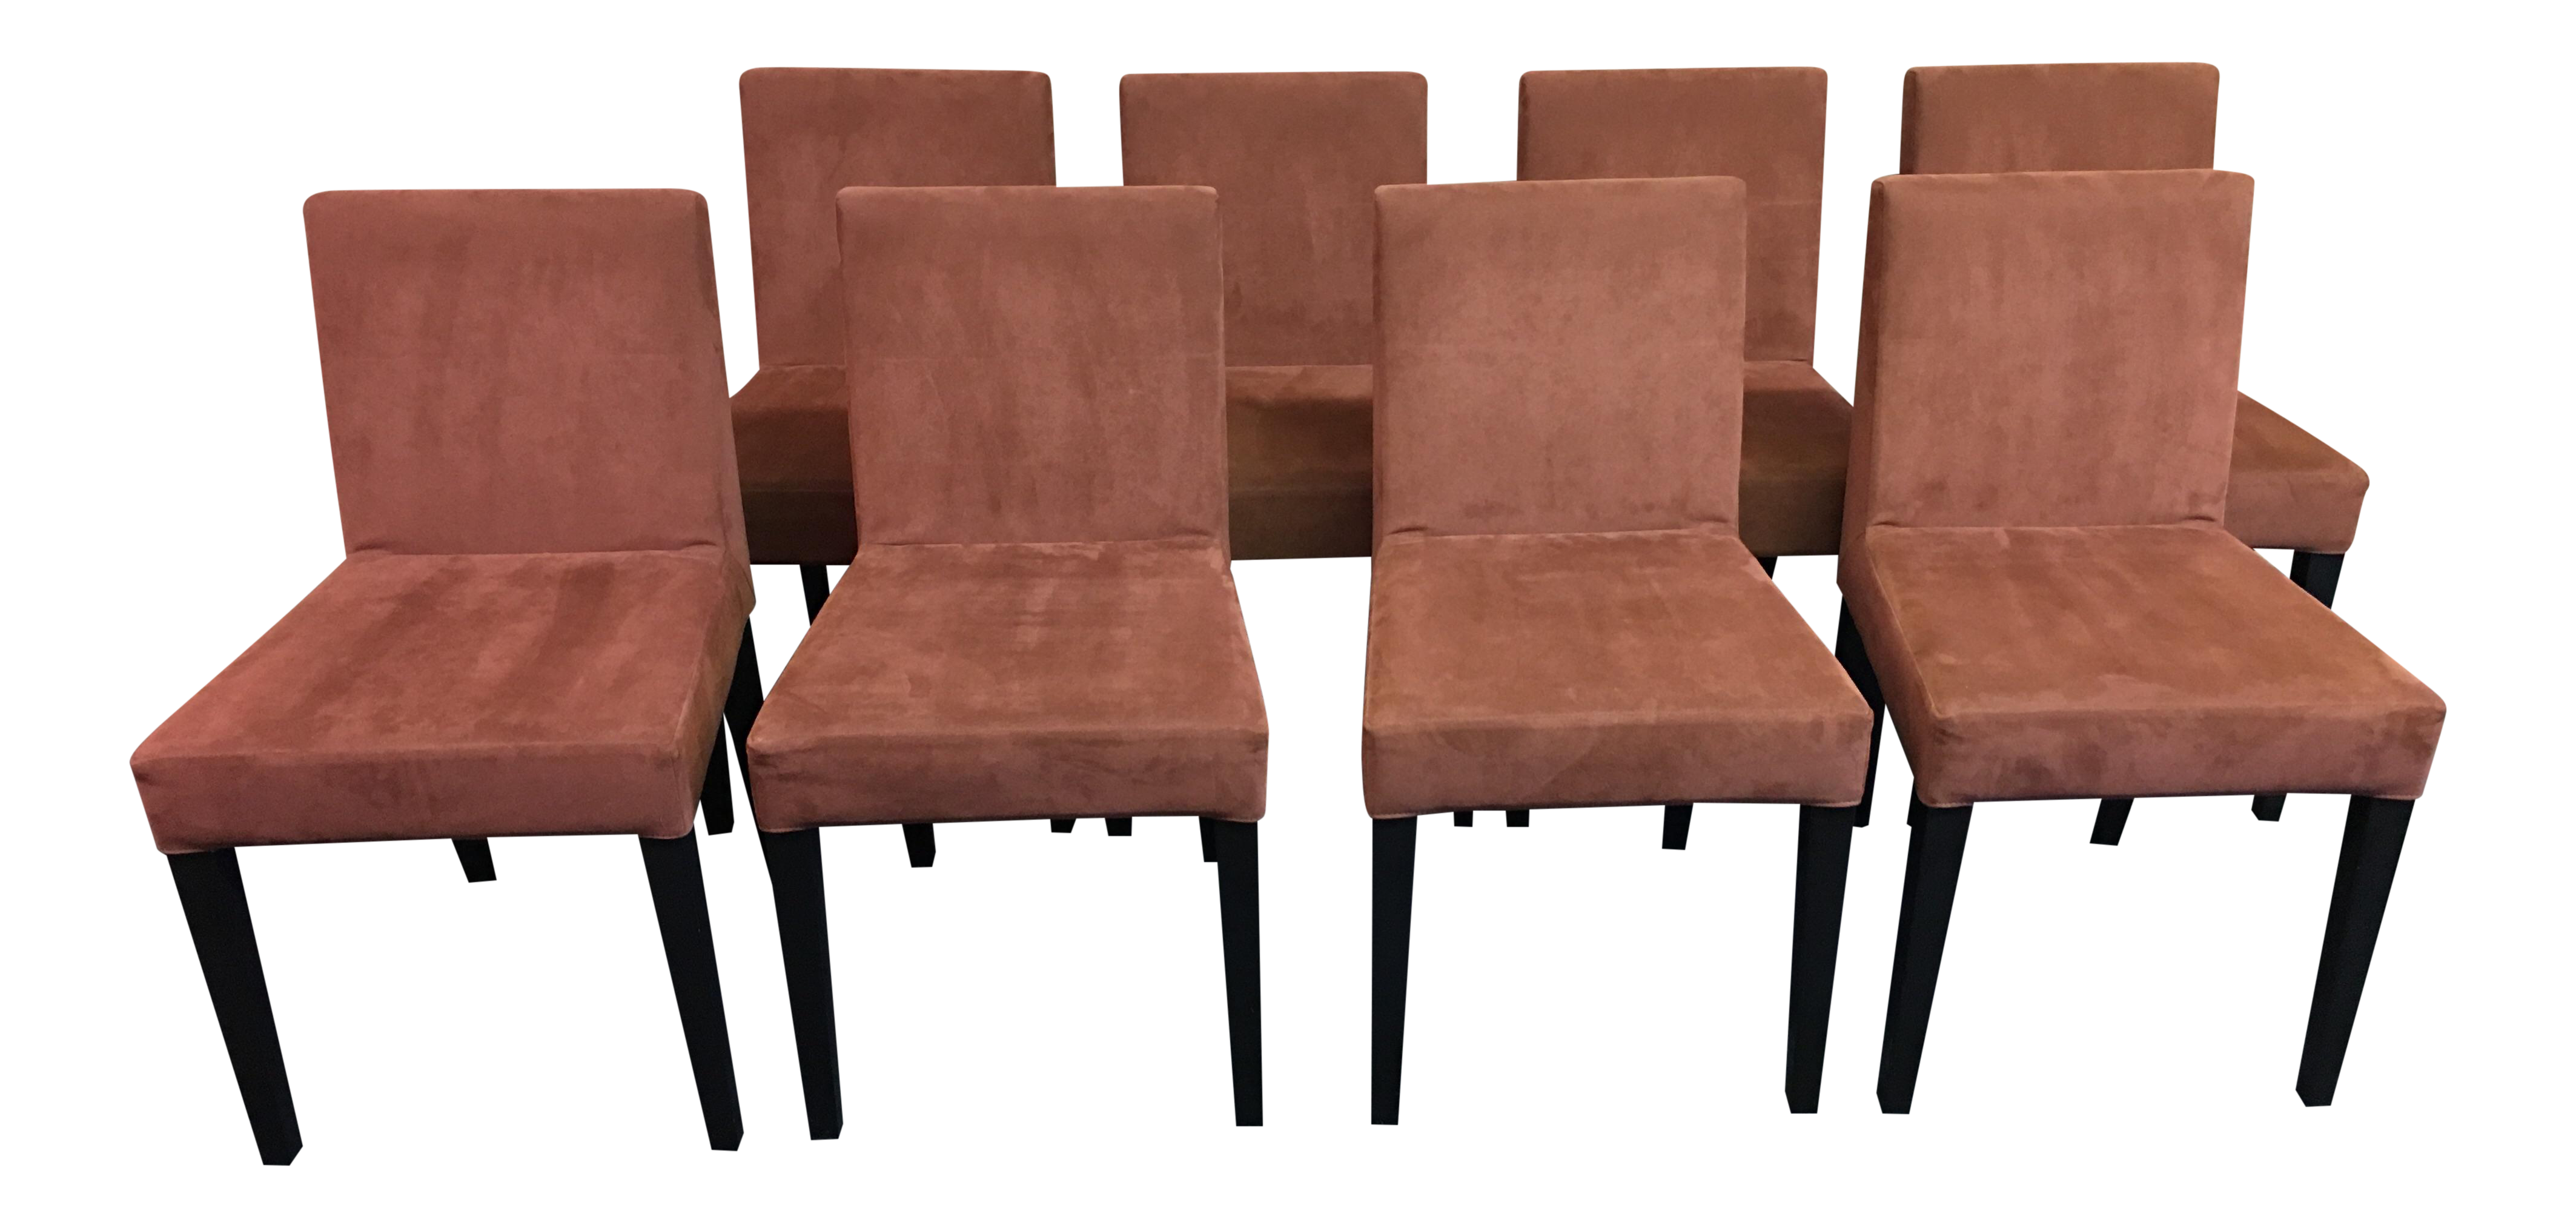 mirrored kitchen cabinets ligne roset line dining chairs set of 8 chairish 23409